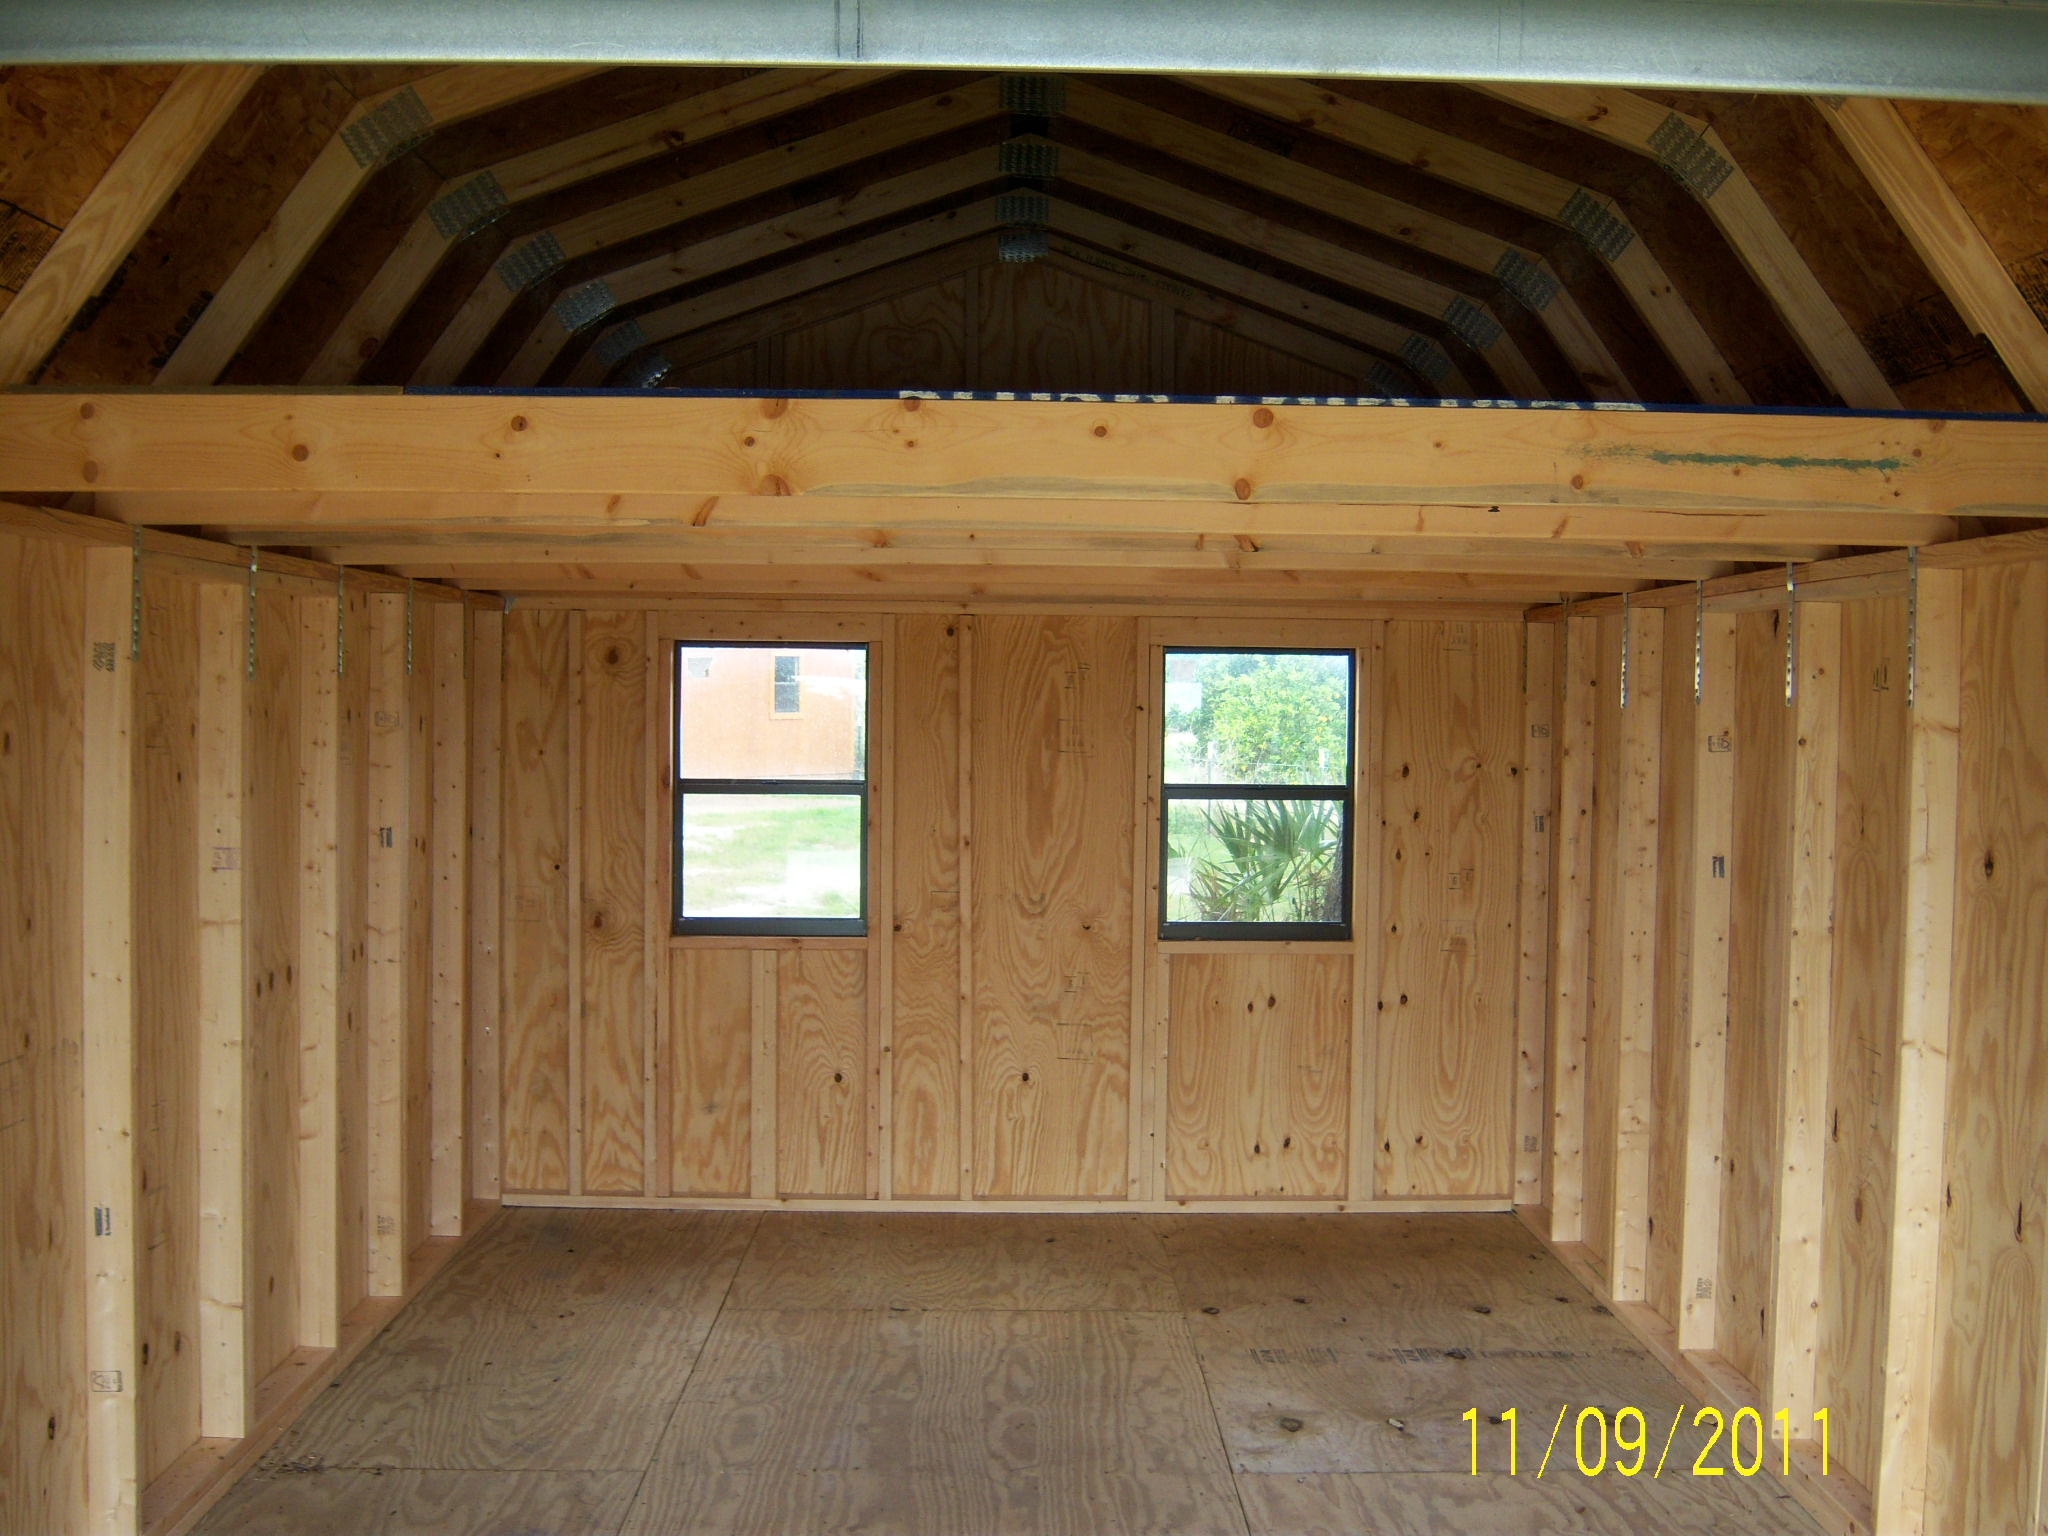 storage shed plans storage shed plans 8 x 10 large storage shed plans ...